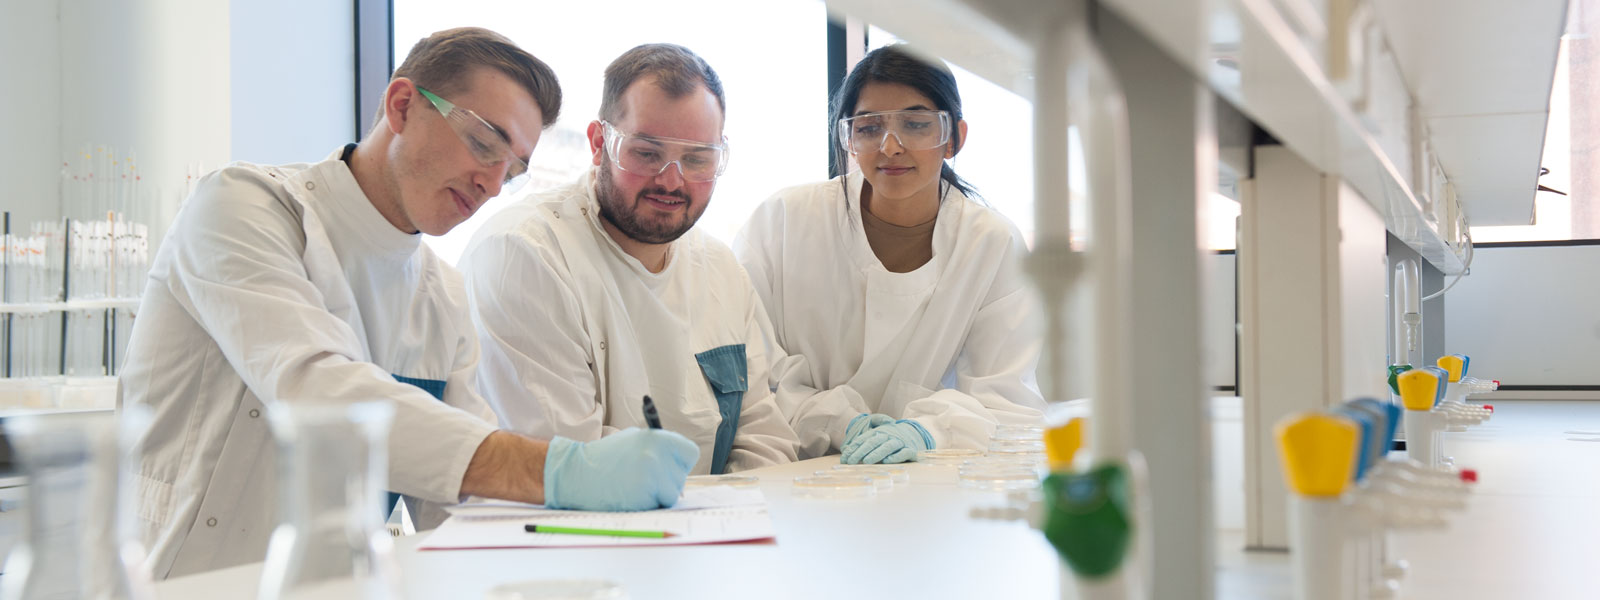 two male scientists and a female scientist work in a lab with lab coats and safety goggles